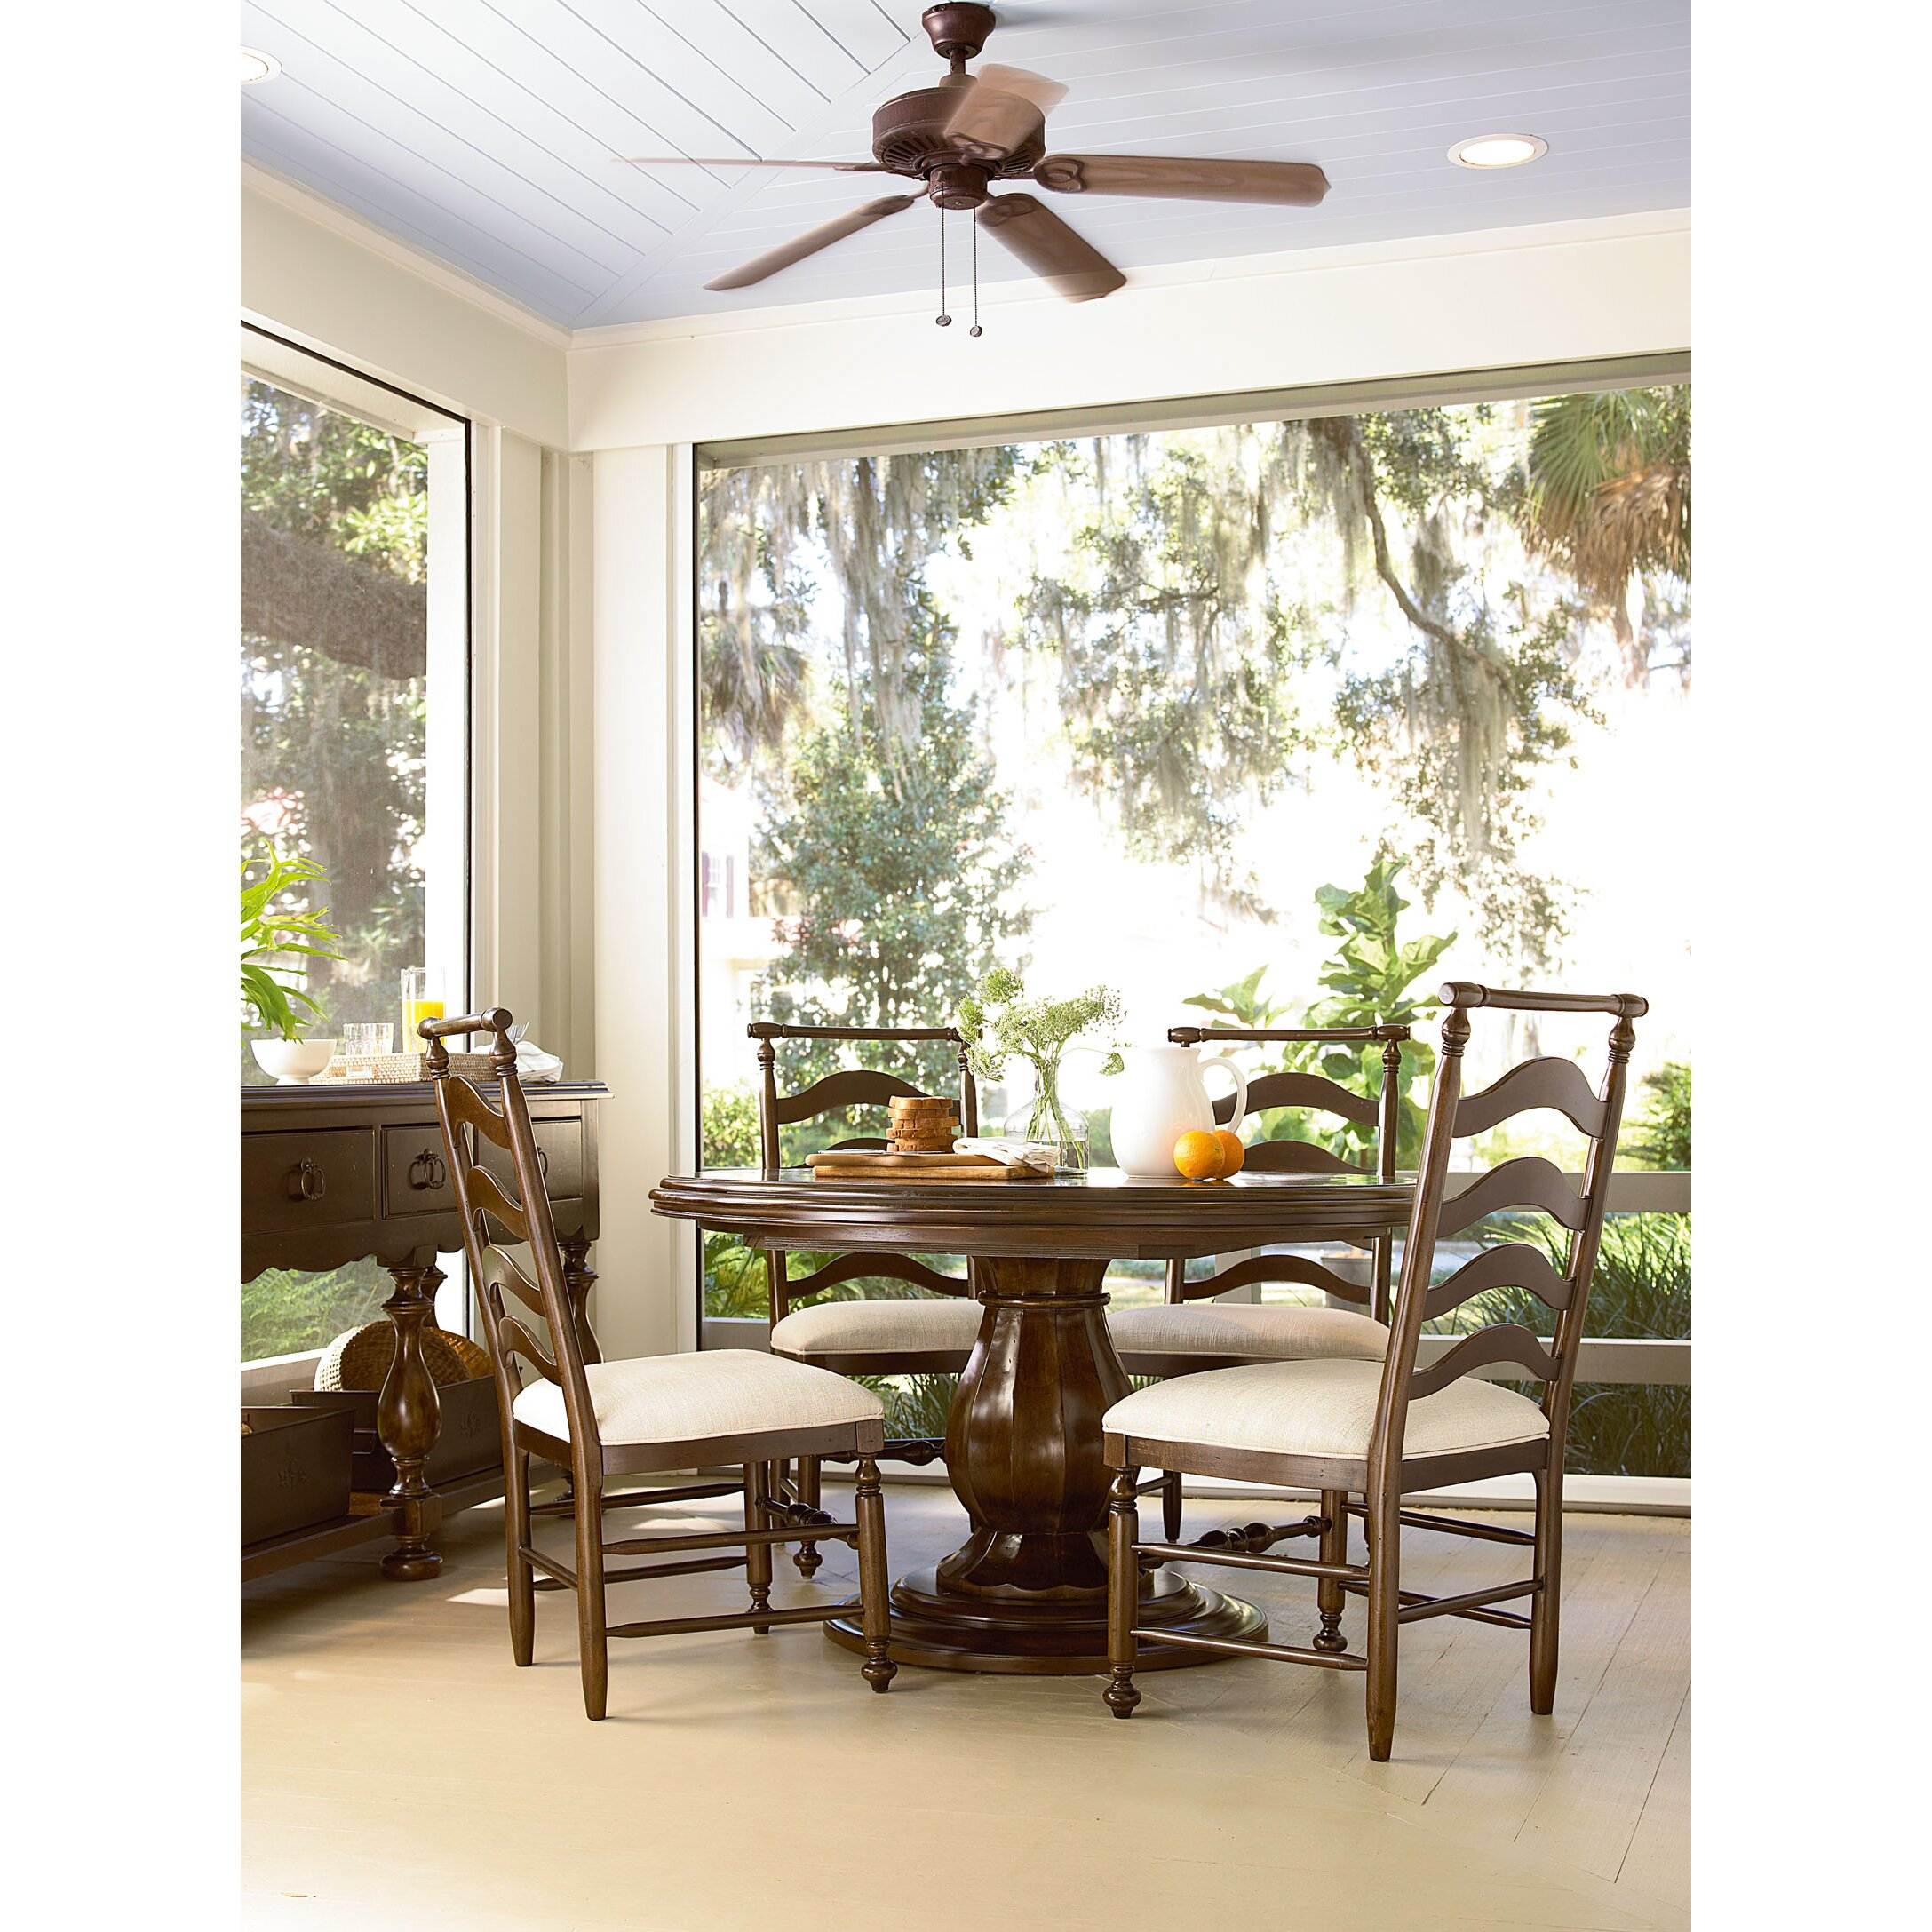 Paula Deen Dining Room Table: Paula Deen Home River House Dining Table & Reviews